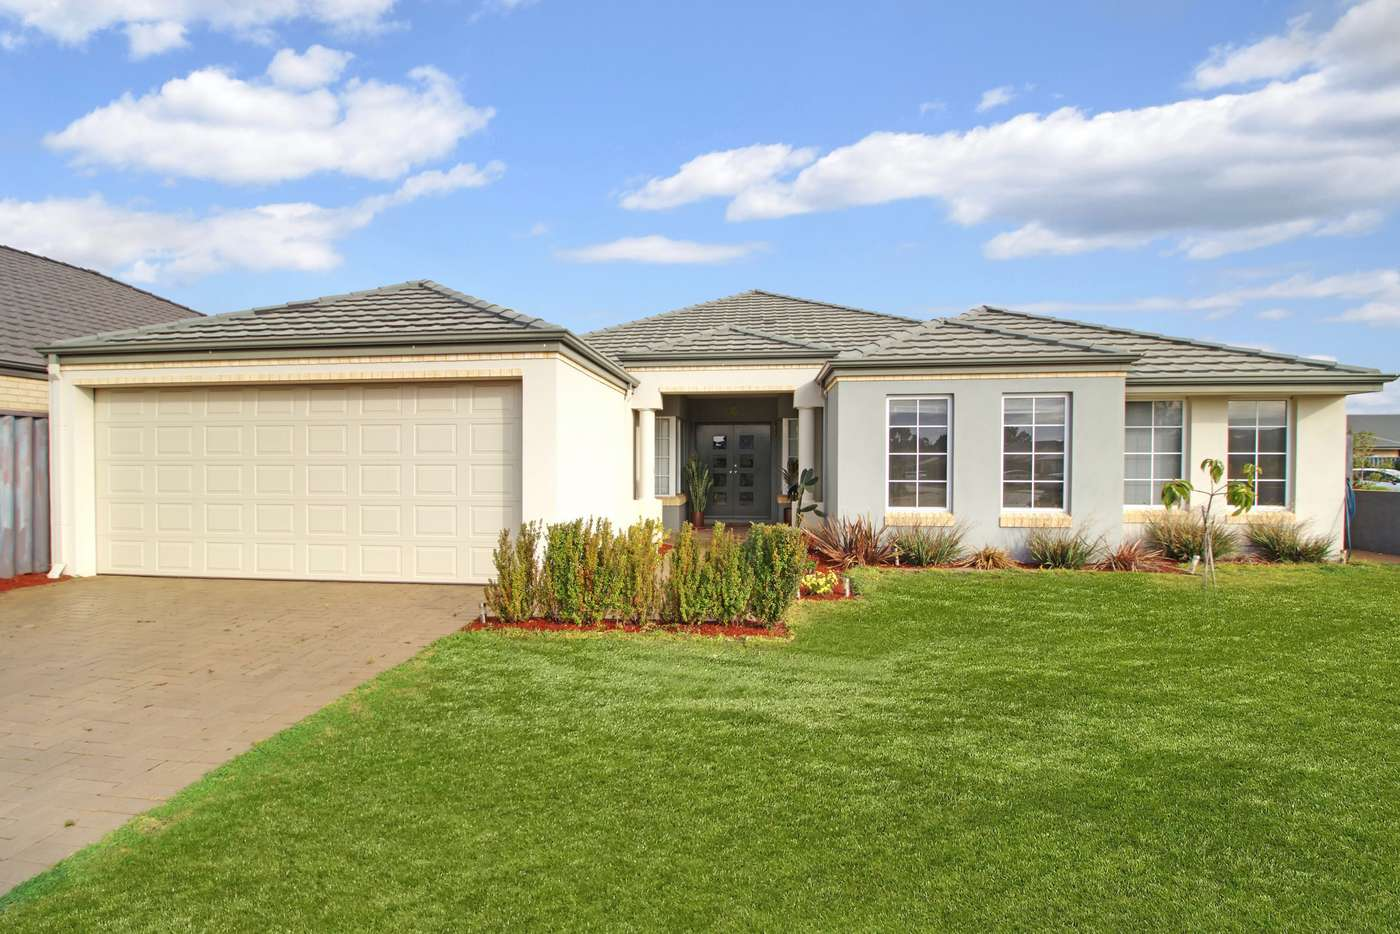 Main view of Homely house listing, 19 Pinto Avenue, Baldivis WA 6171